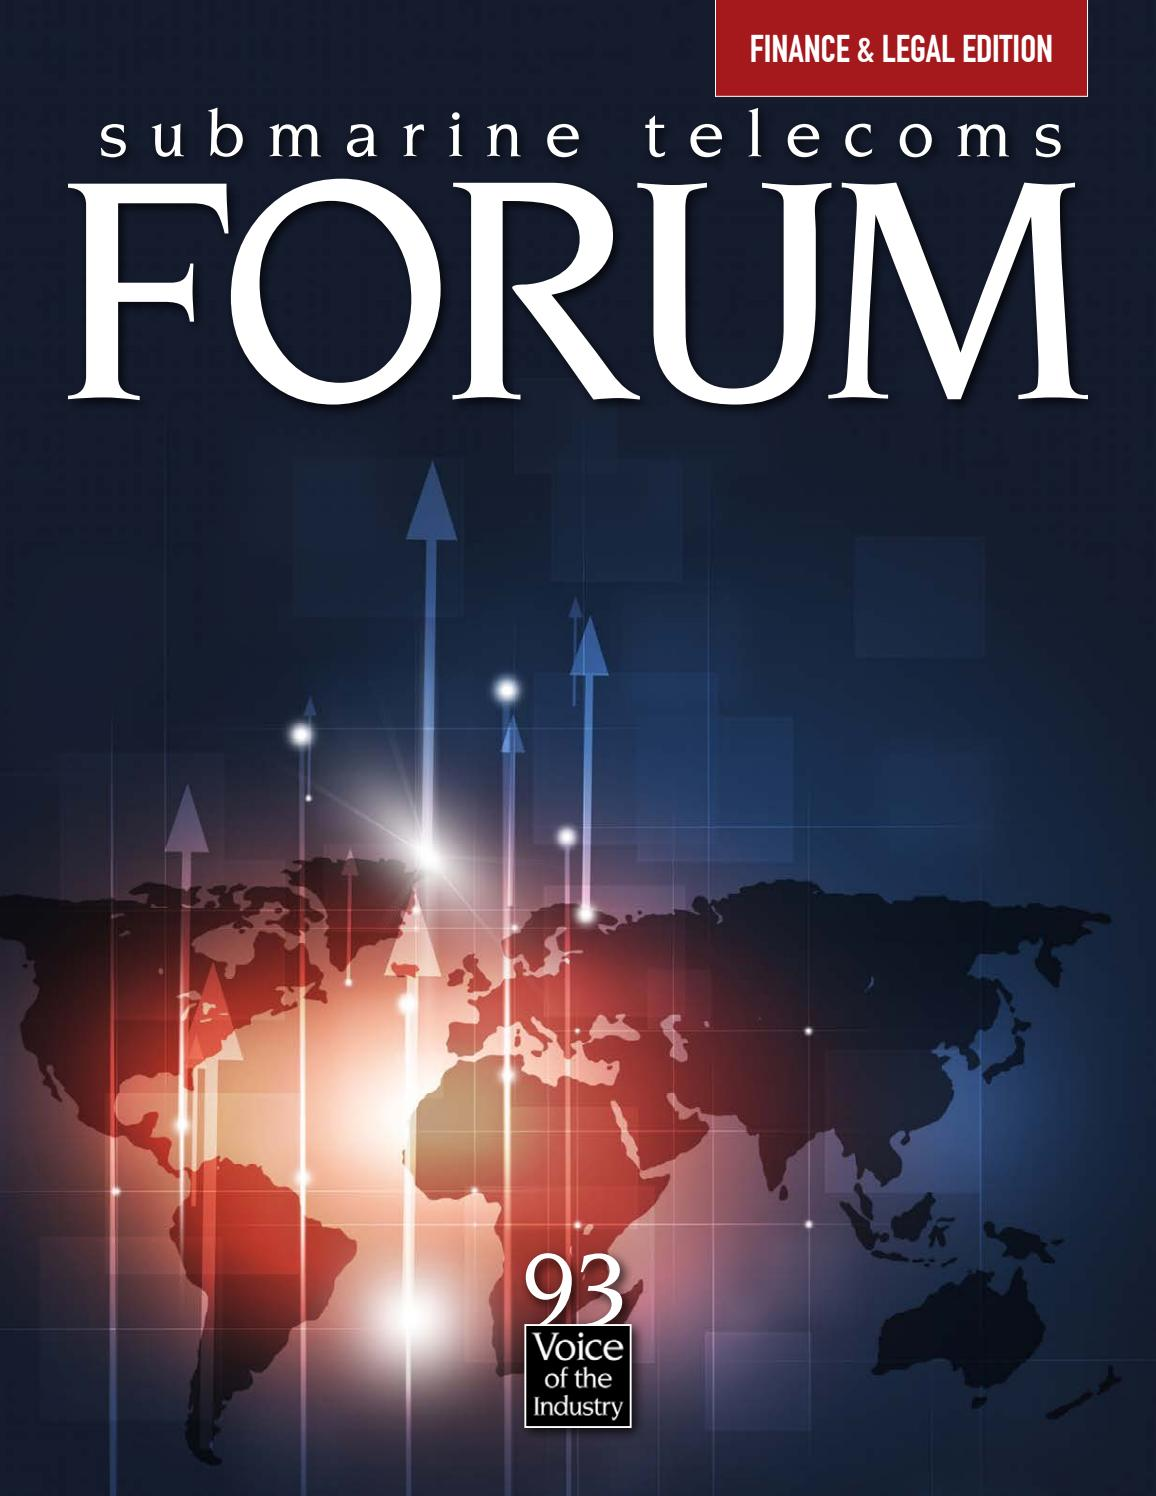 Submarine telecoms forum 93 by submarine telelecoms forum issuu fandeluxe Gallery